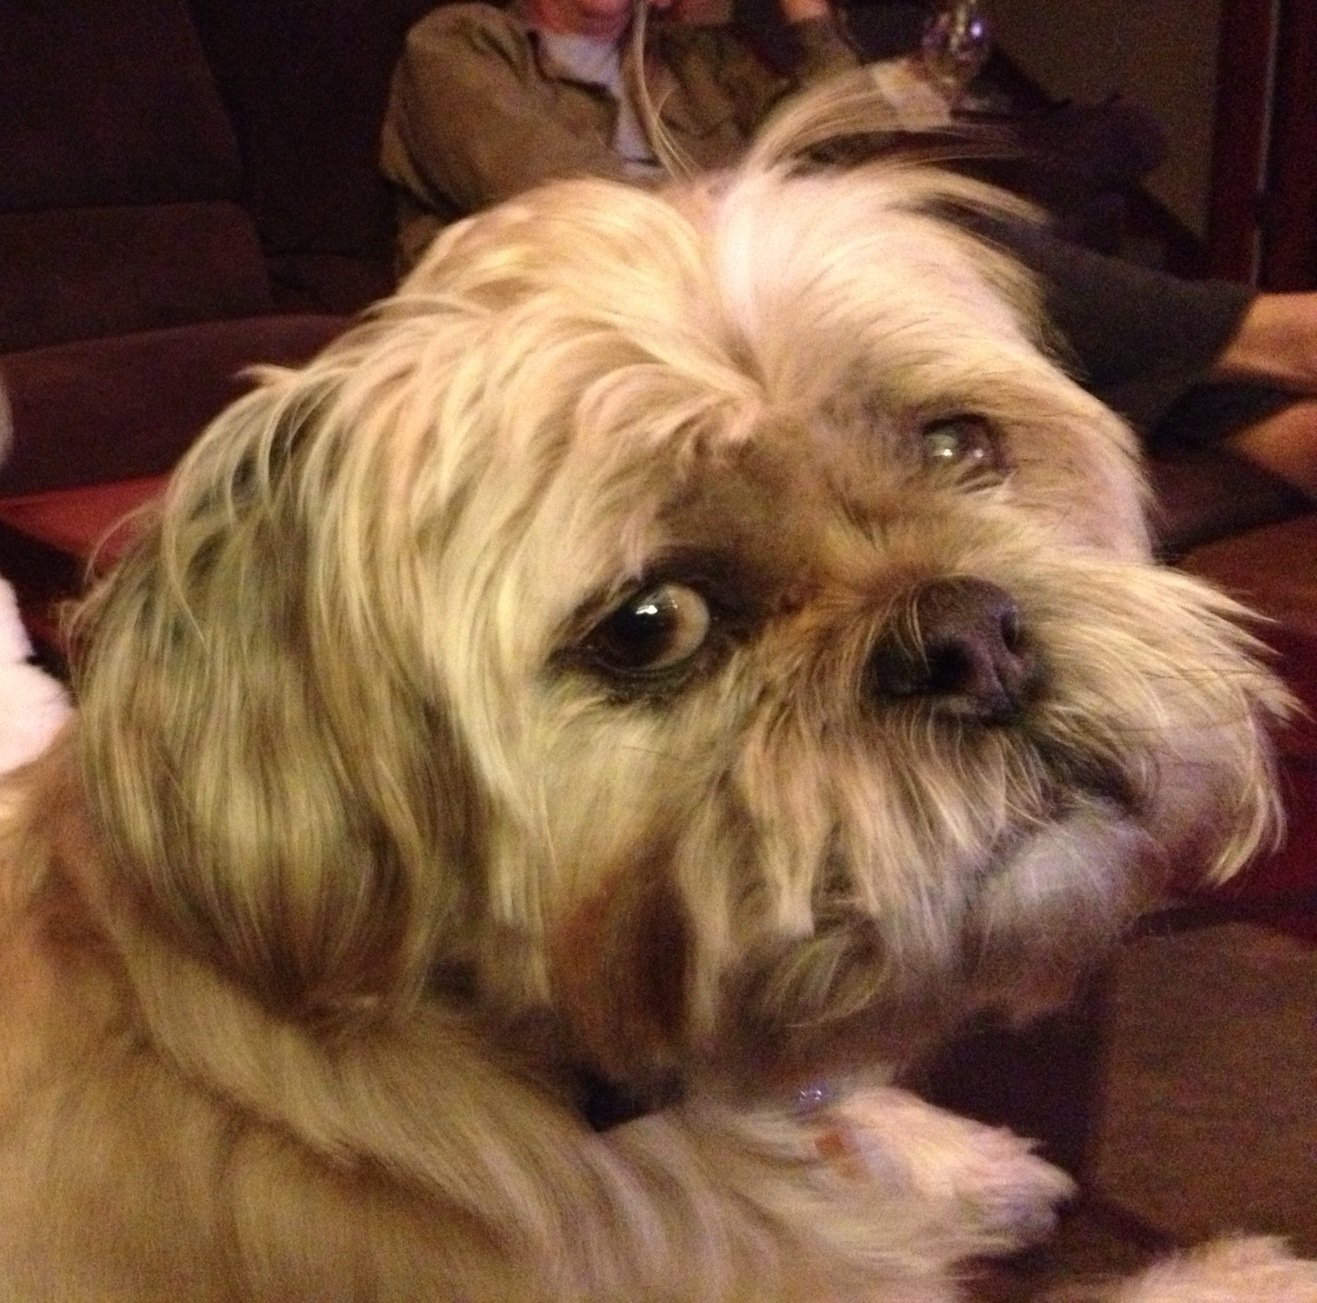 LOST – 4/26/13 – Dog, Shih Tzu / Pug Mix – St. Mary's County